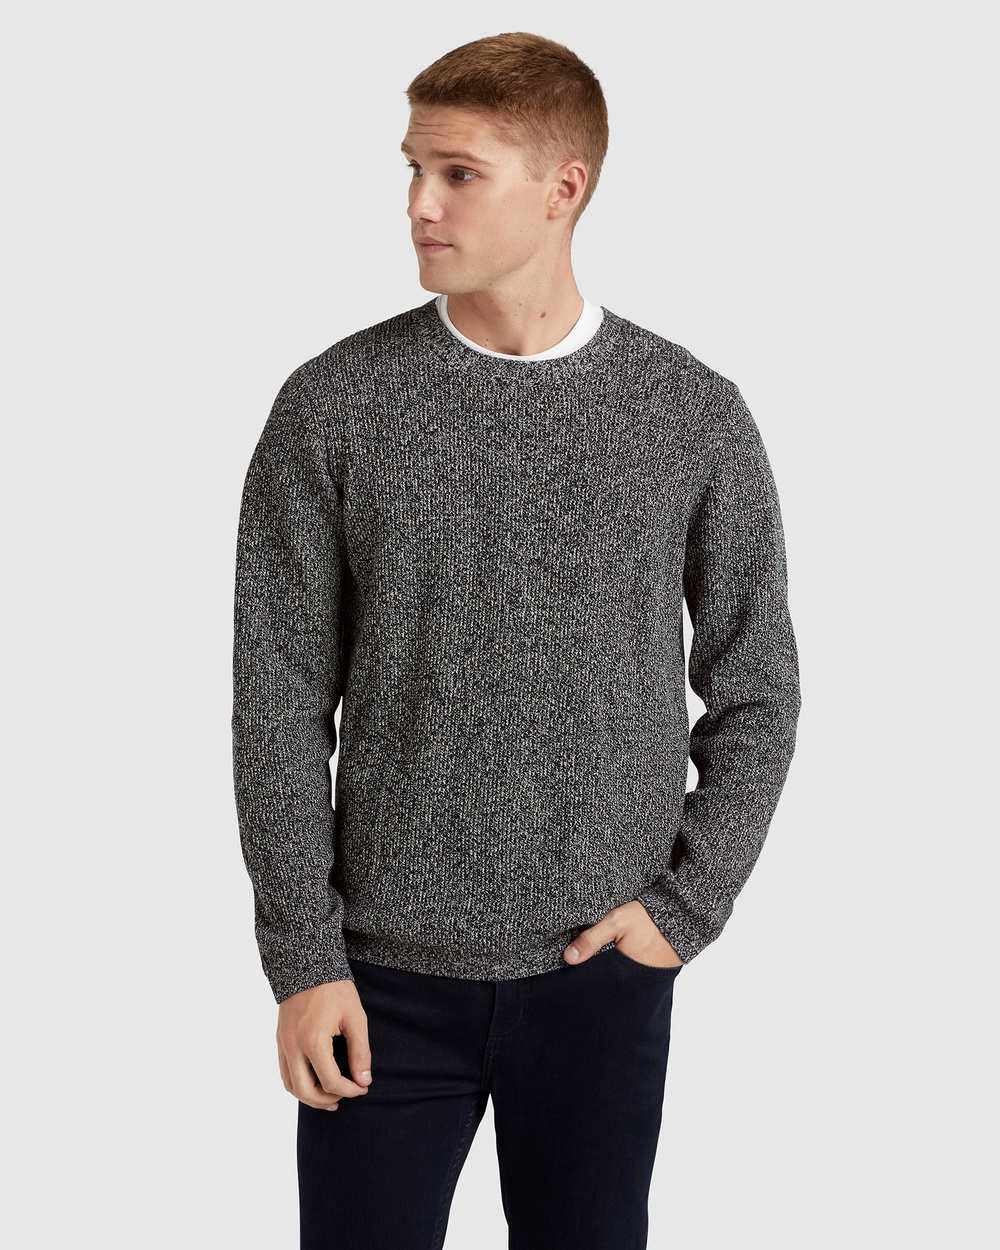 French Connection Mixed Yarn Knit Jumpers & Cardigans MARINE BLUE/WHITE Australia